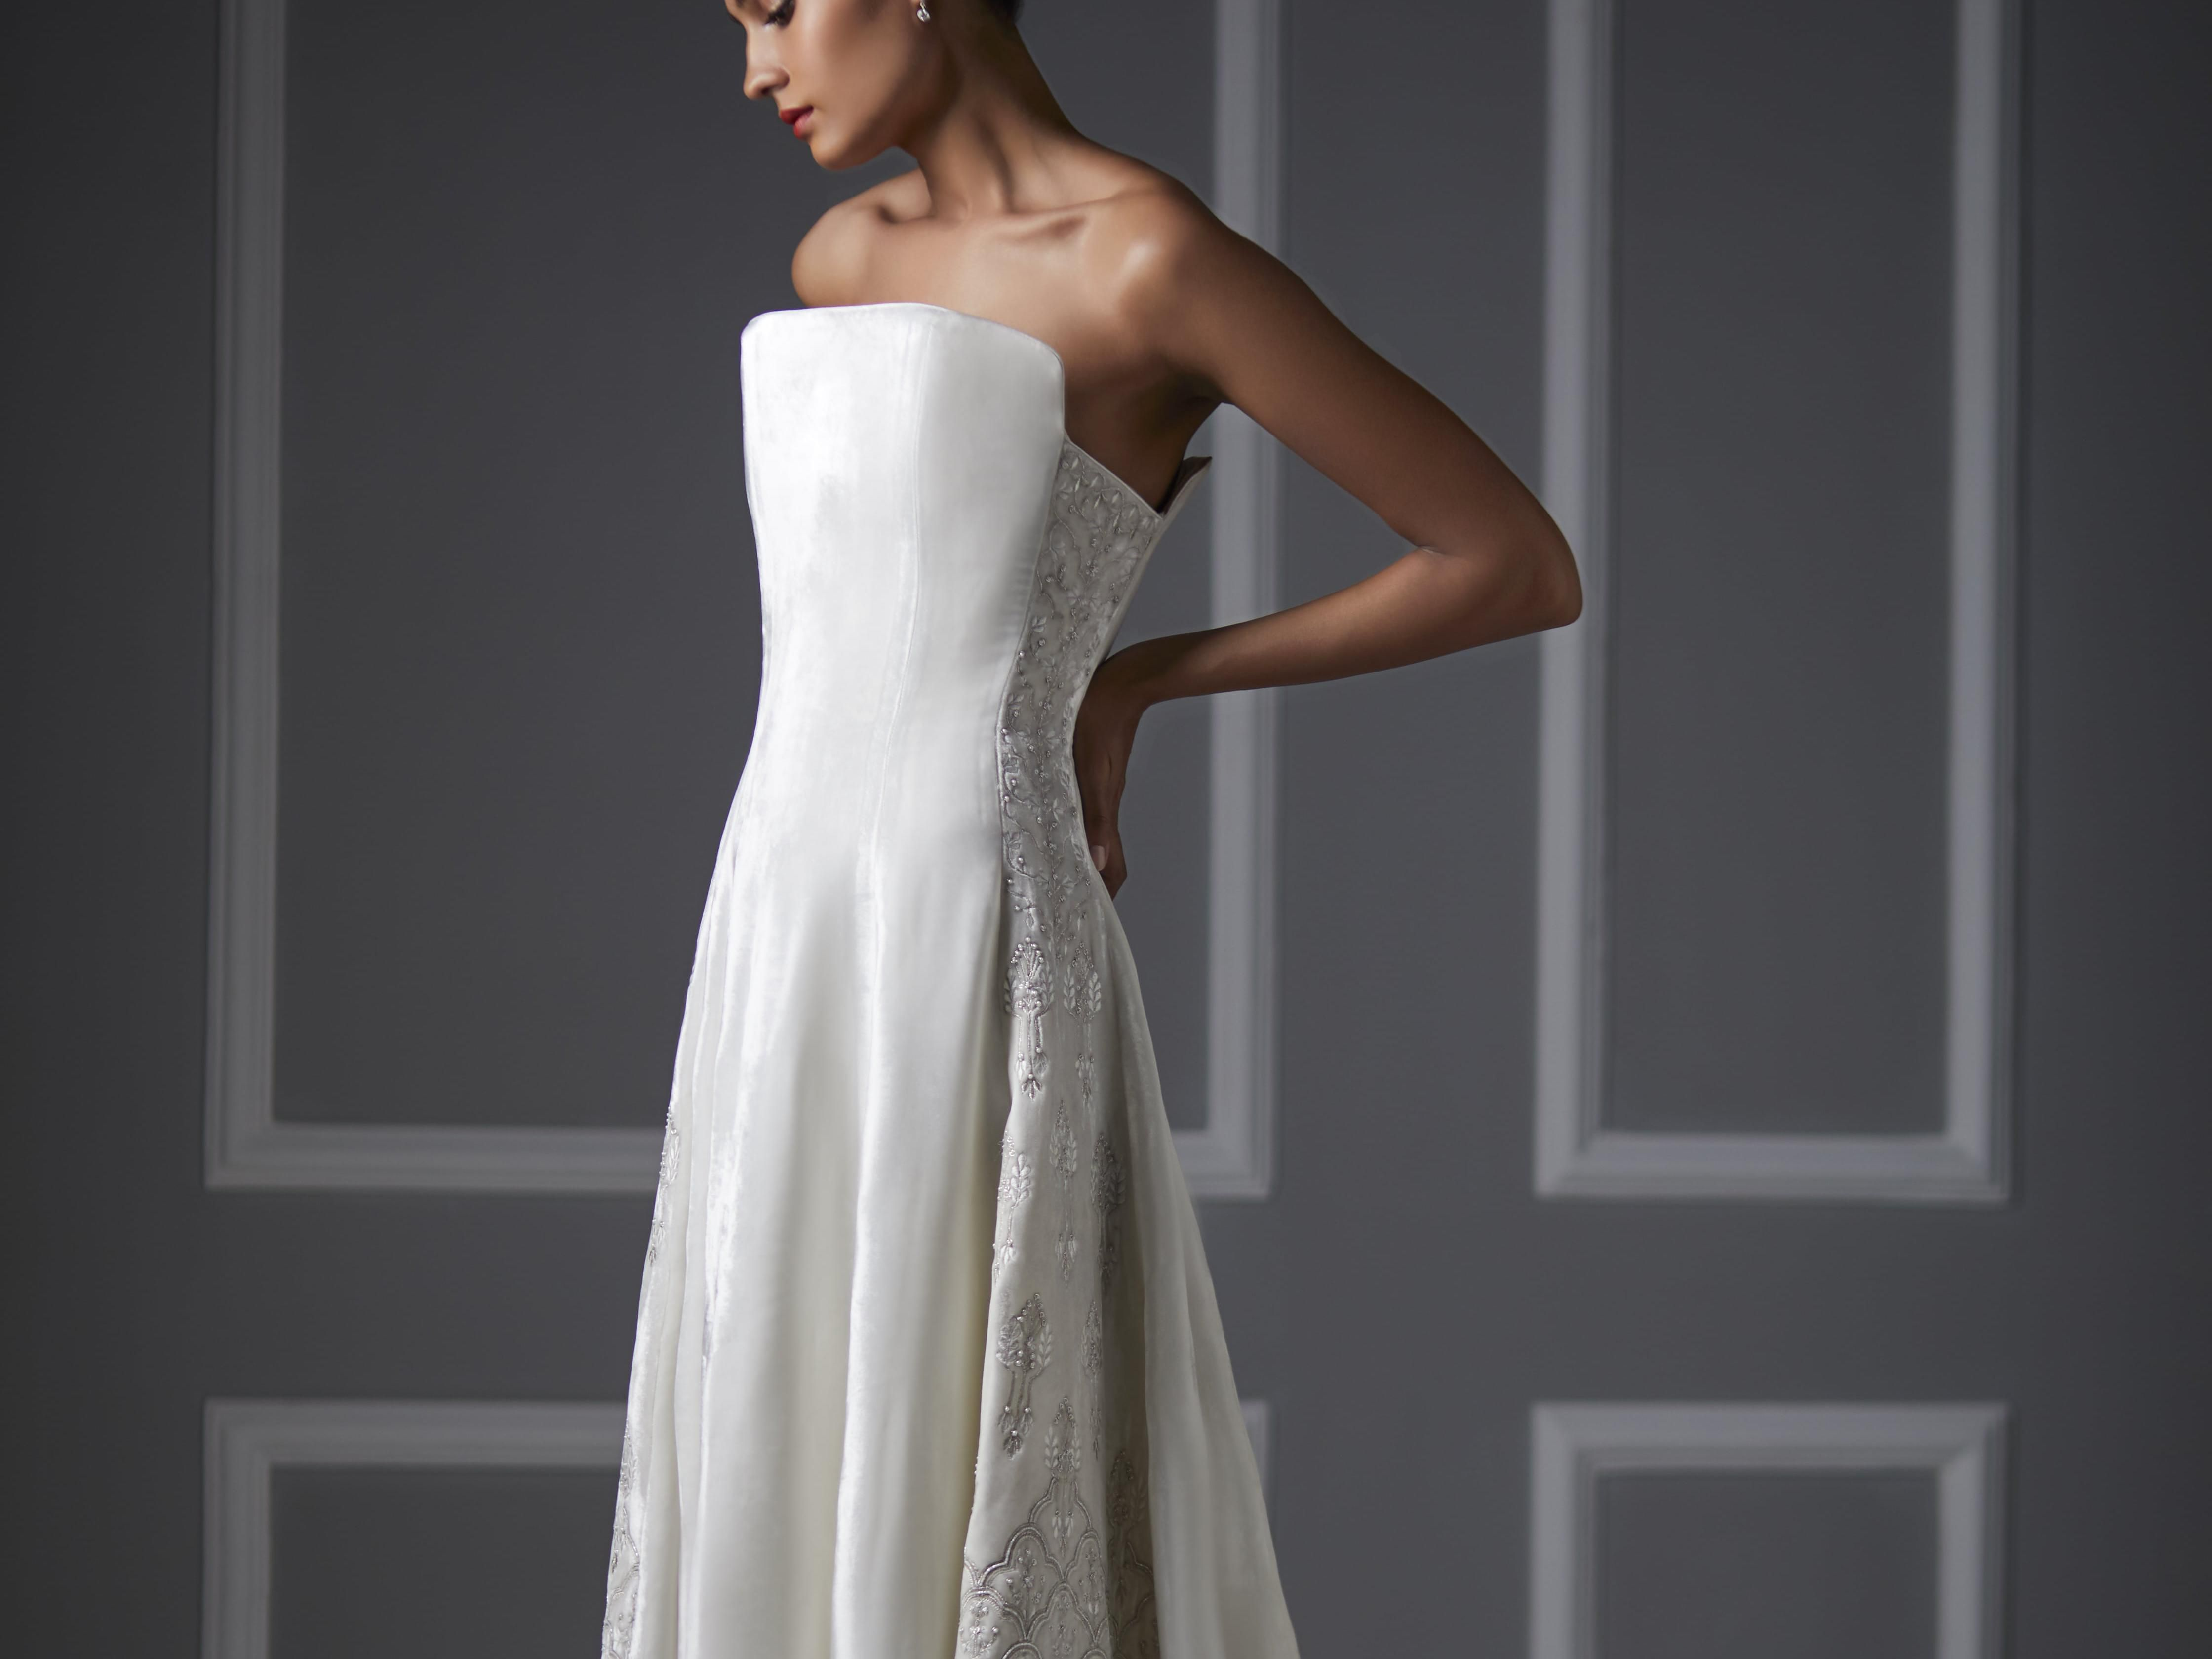 Indian Designer Anita Dongre Debuts Her First Ever Western Bridal Collection,Diamond Luxury Wedding Dresses